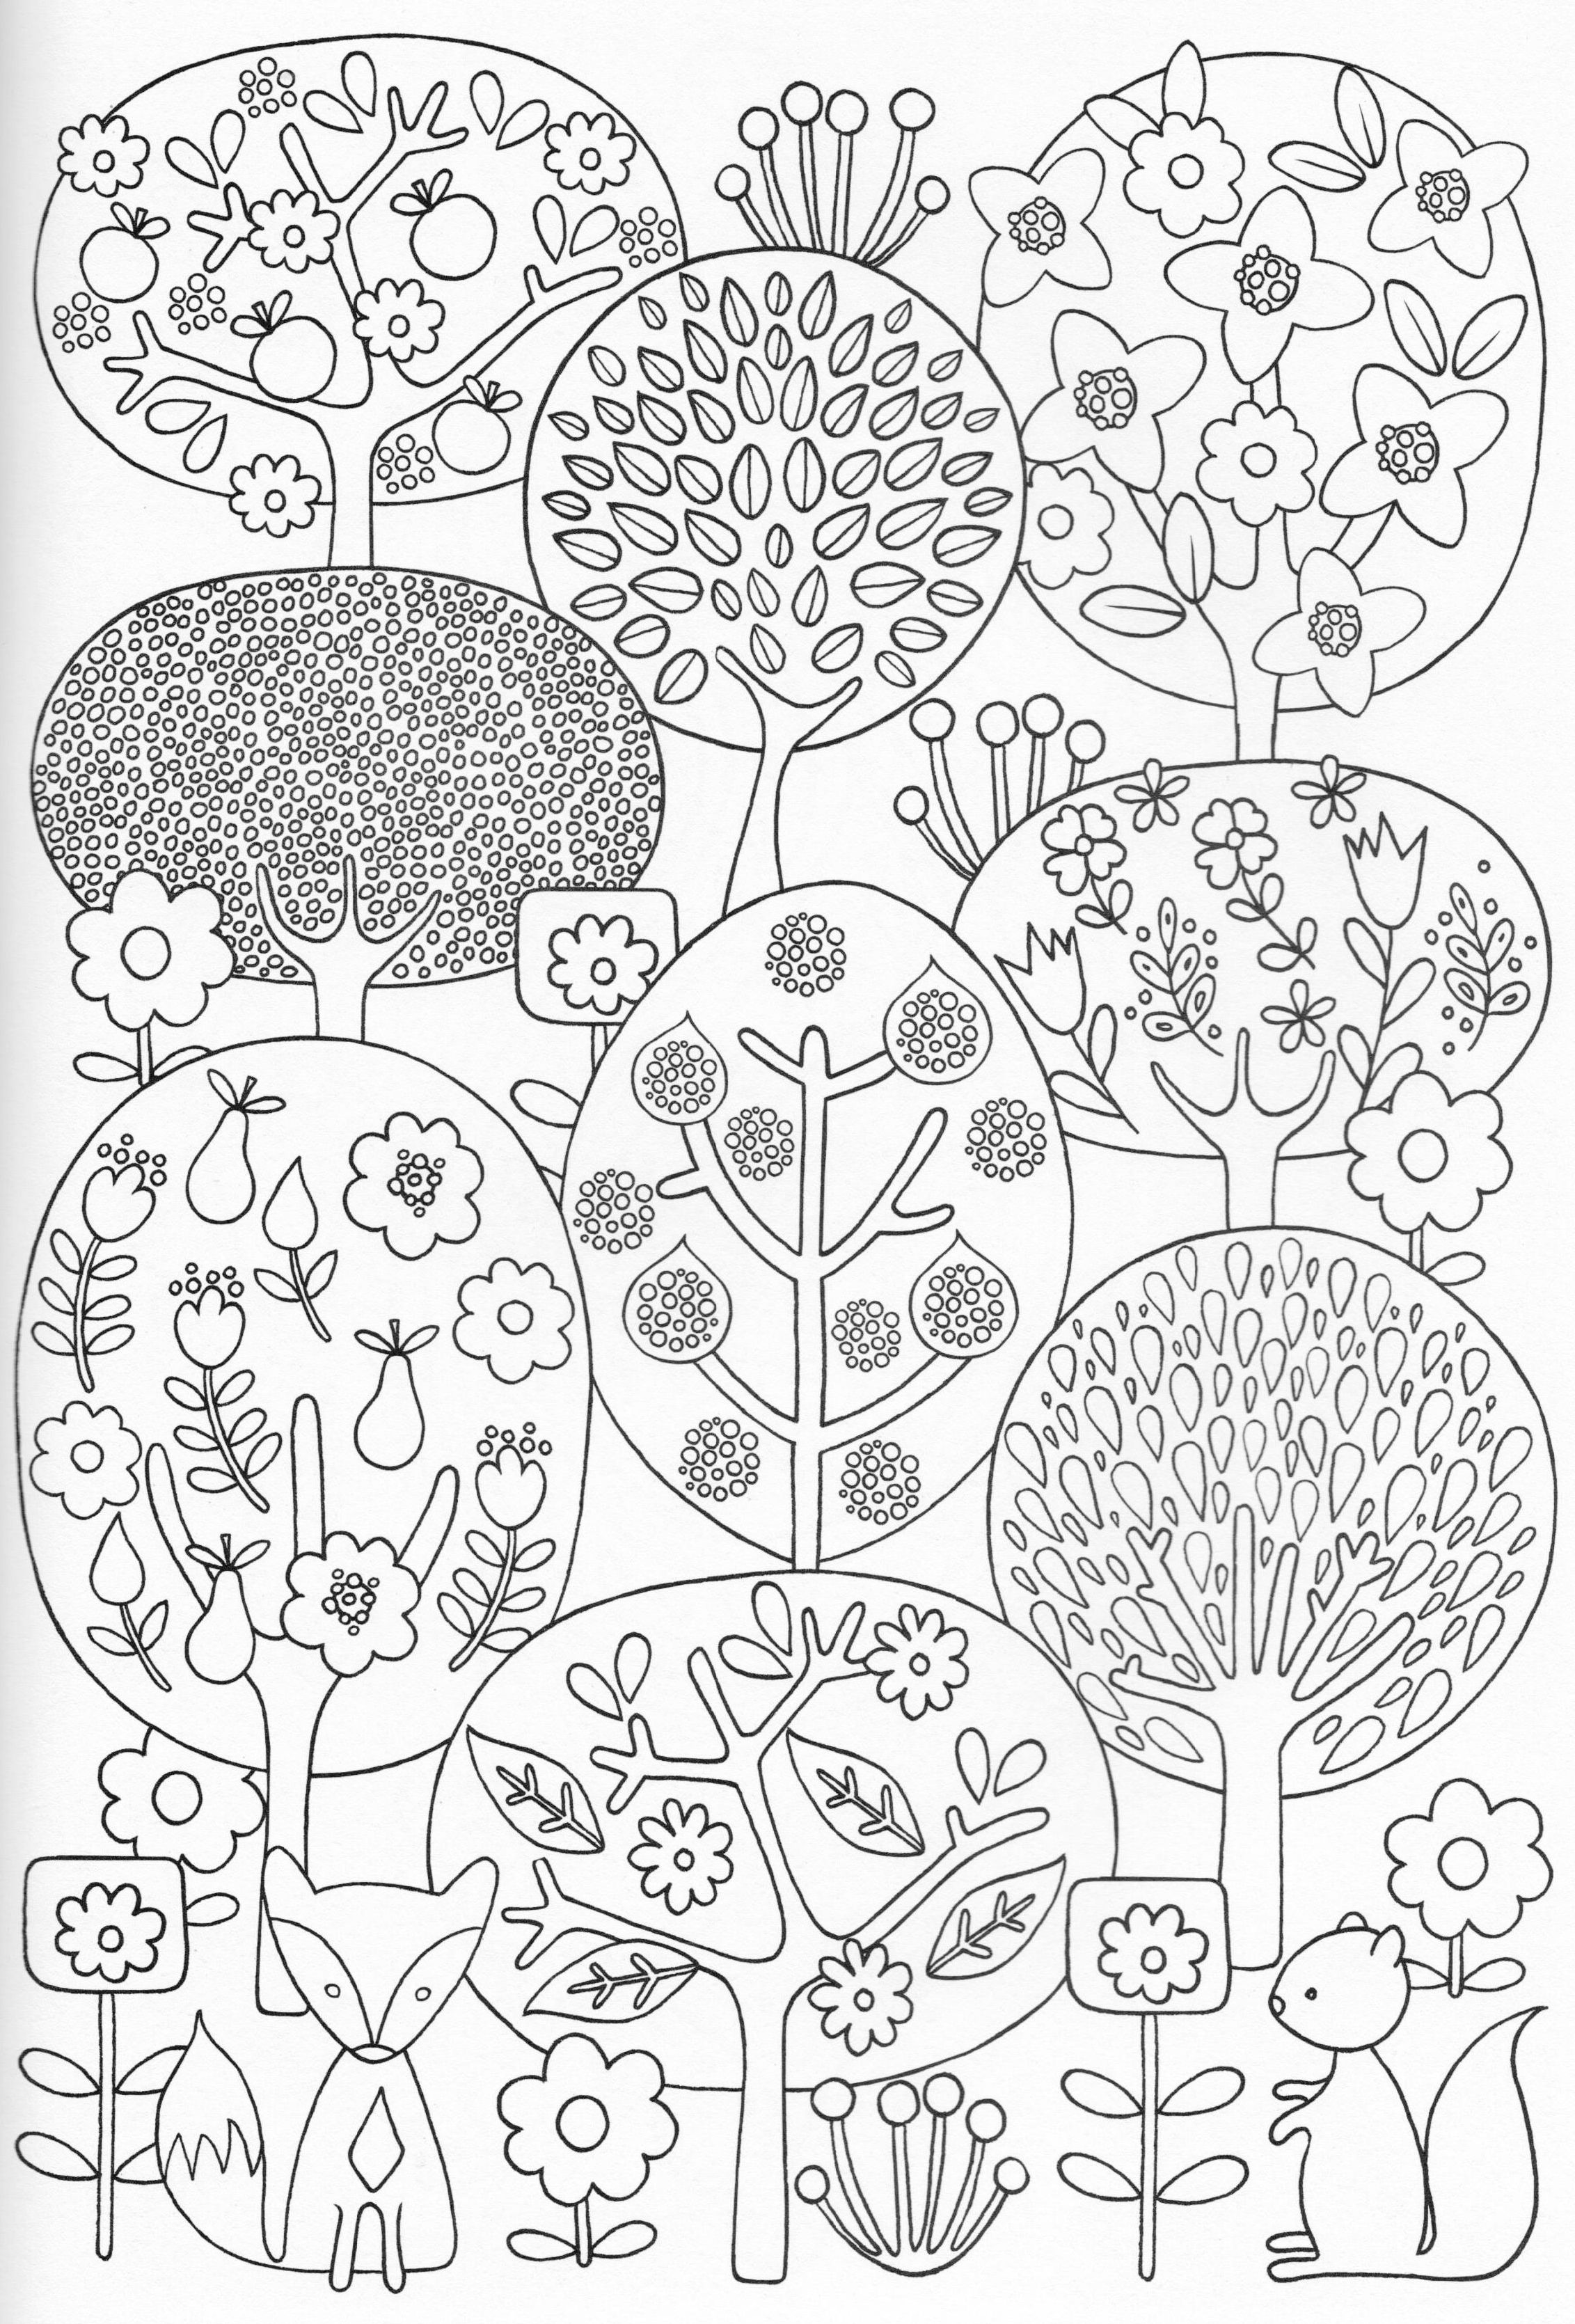 Coloriage Mandala Foret.Coloriage Foret Foret Art Therapie Art Therapie Foret Coloriage